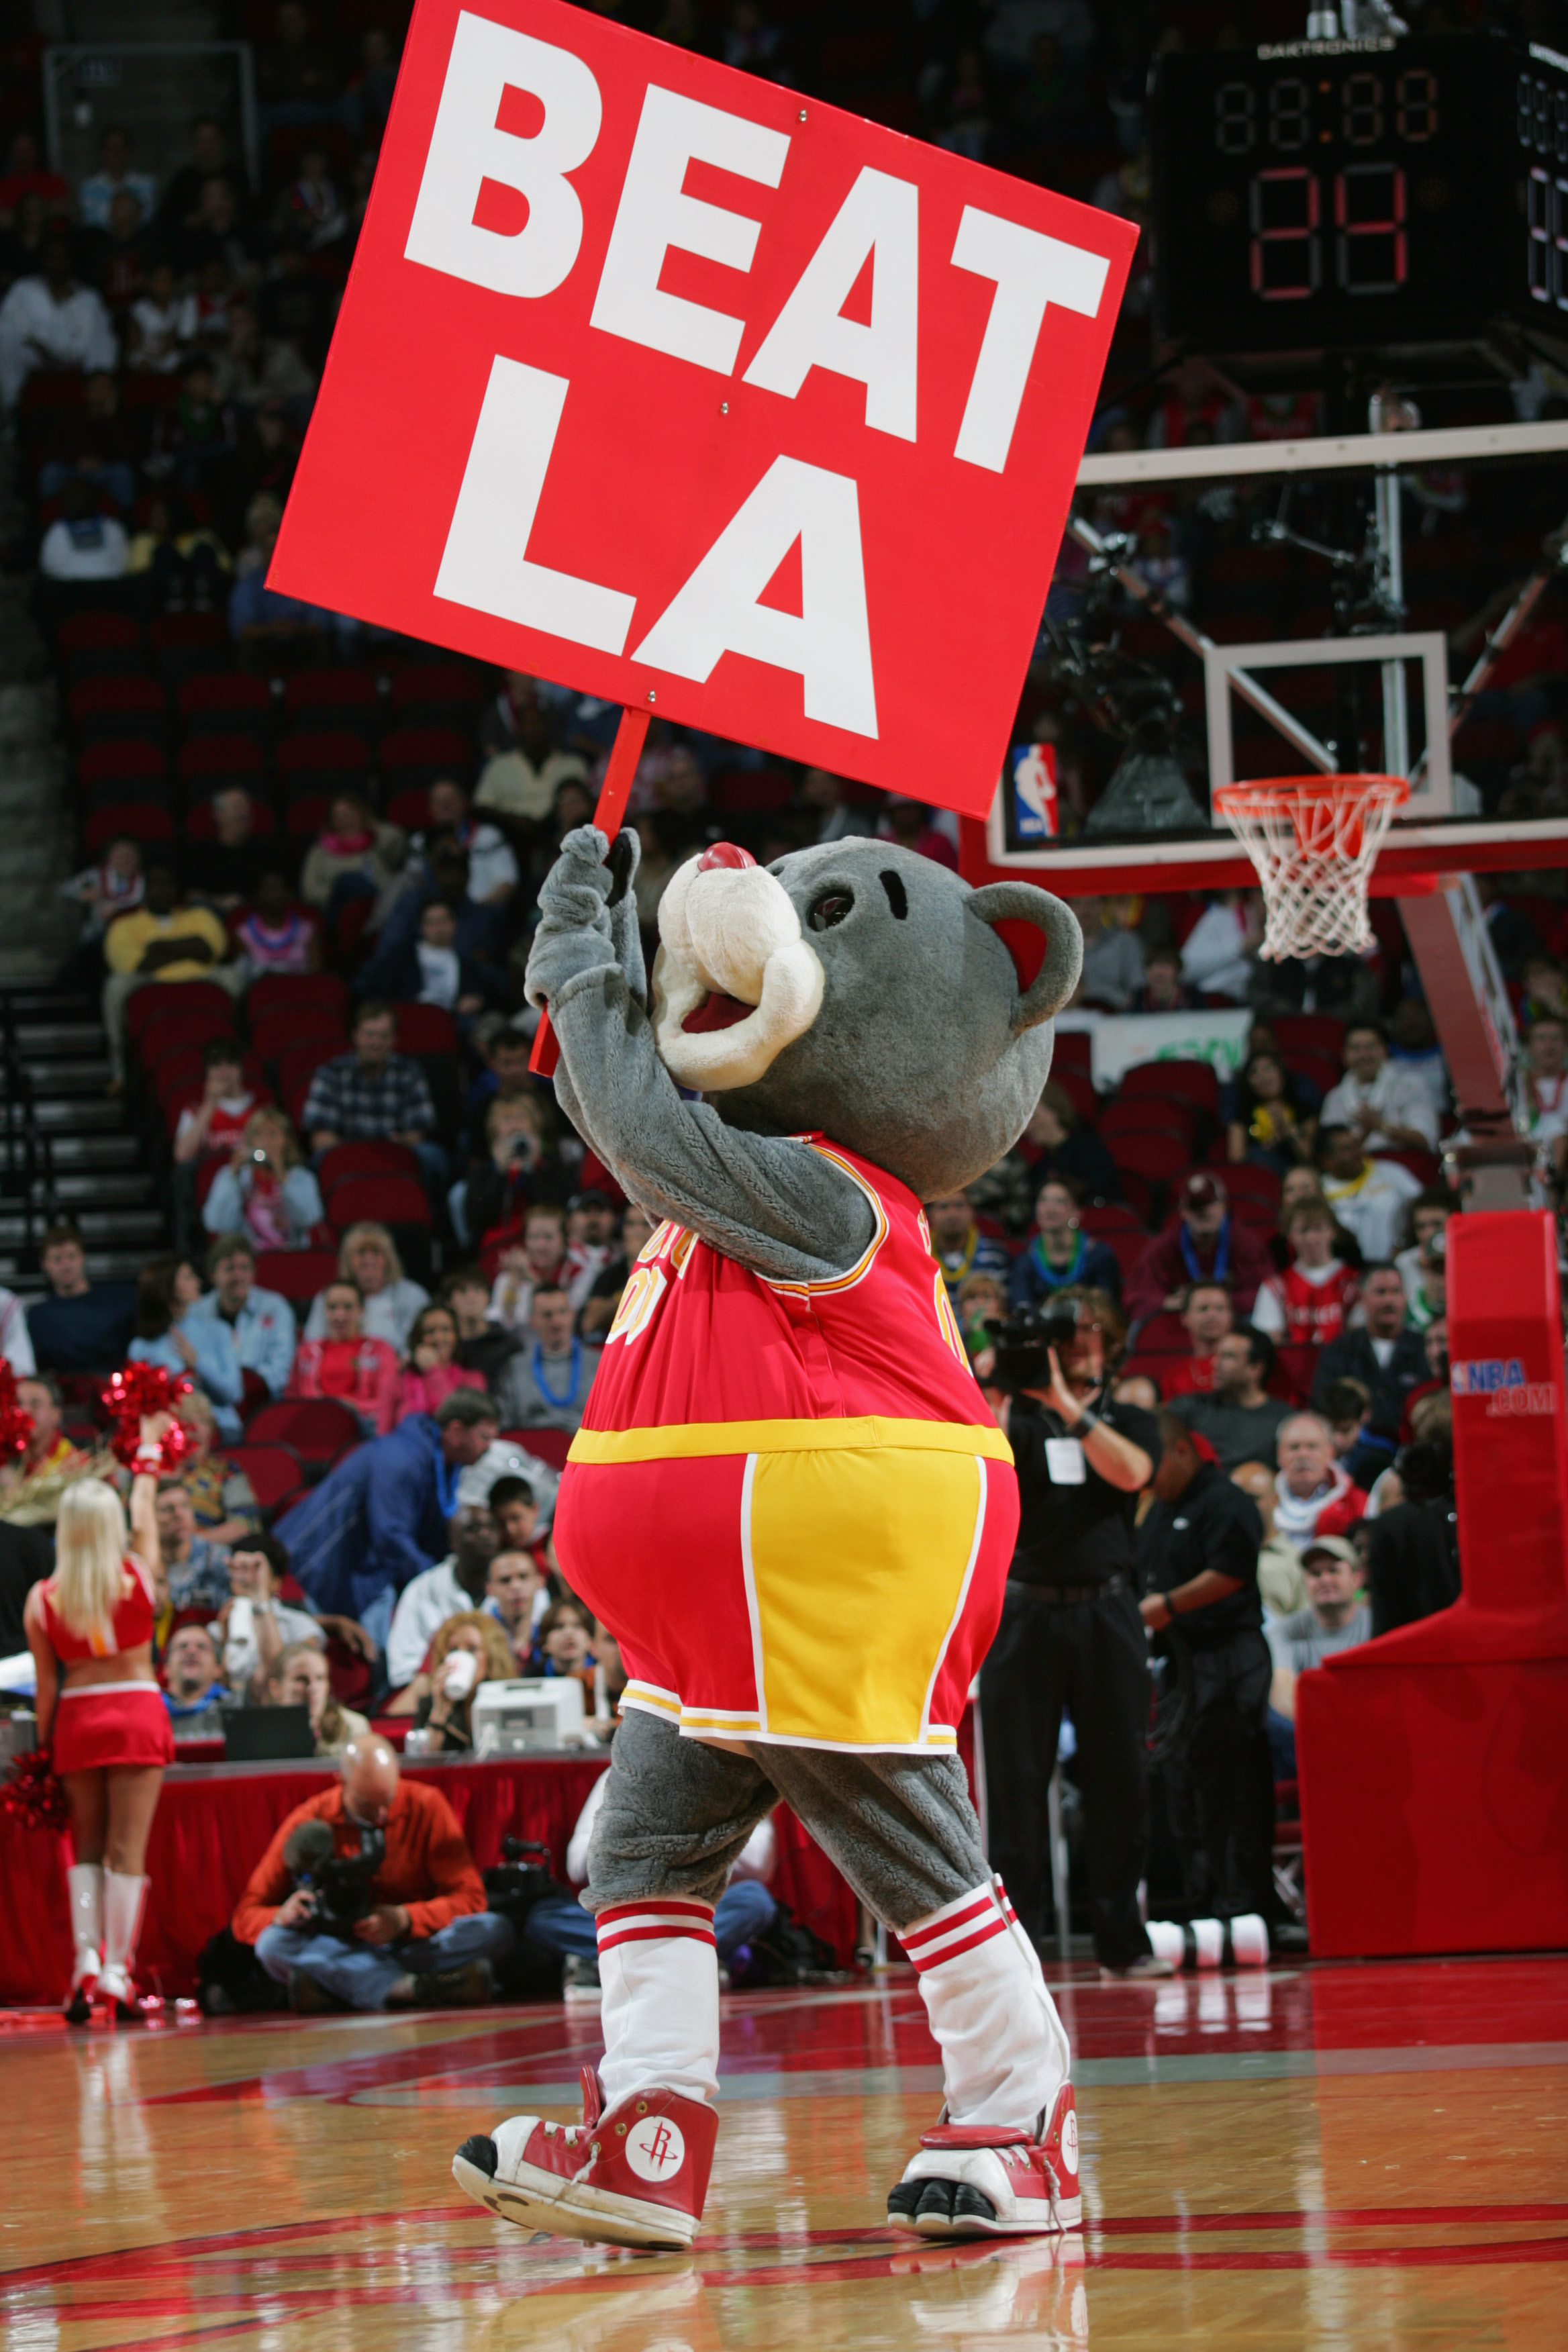 HOUSTON - FEBRUARY 6:  Clutch, the Houston Rockets mascot, hols a 'Beat LA' sign during the game against the Los Angeles Lakers on February 6, 2005 at the Toyota Center in Houston, Texas.  The Rockets won 103-102.  NOTE TO USER: User expressly acknowledge